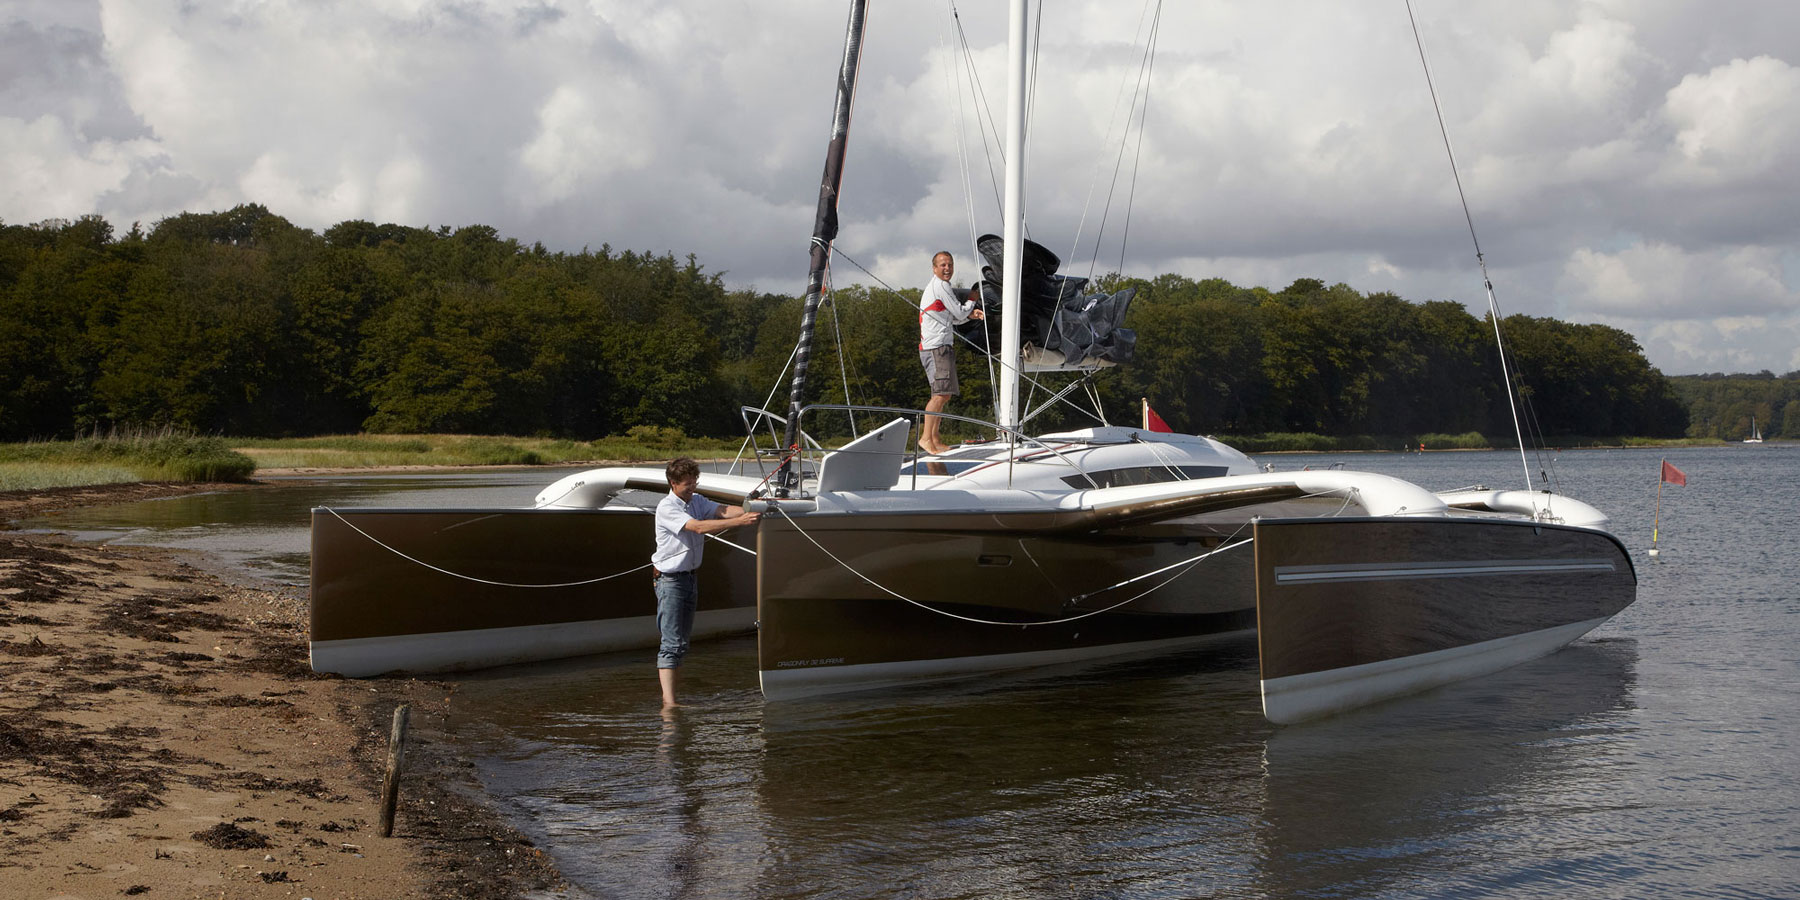 Dragonfly 32 trimaran floats in knee-deep water